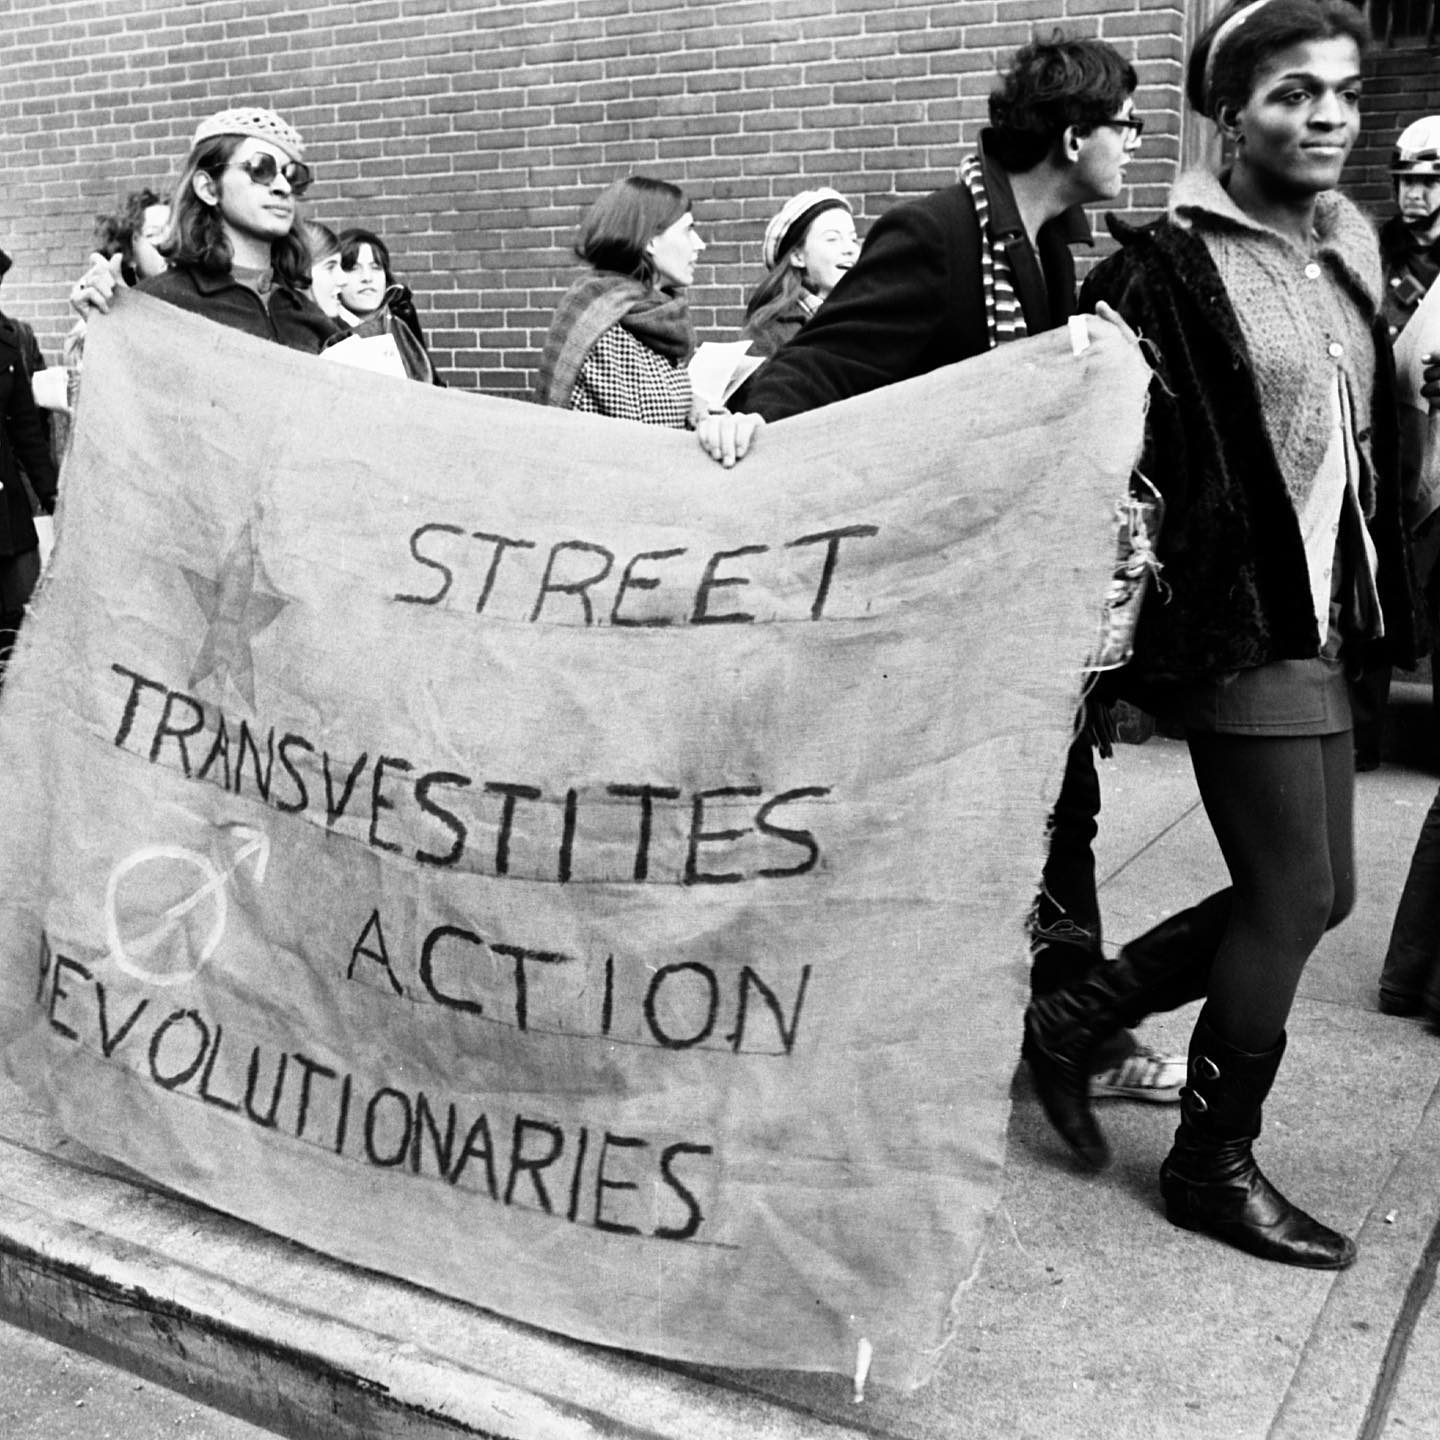 Happy Pride Month! 🌈 The next four weeks at this account will be dedicated to MUUS' images of LGBTQ pride and resistance. Today, we begin with a set of rare, never before seen images, of Marsha P. Johnson and Sylvia Rivera marching with a banner for their organization S.T.A.R., Street Transvestite Action Revolutionaries.  Throughout past decades, LGBTQ people have overcome huge hurdles of discrimination and violence. Same-sex couples can now be married in the US, openly LGBTQ individuals hold political offices, and LGBTQ storylines are no longer illegal or taboo in popular media.  However, there are still many hurdles to be overcome. According to a study by the Center for American Progress published in October, more than 1 in 3 LGBTQ Americans faced discrimination of some kind in the past year. For transgender Americans, the number jumps to 3 in 5. Further, 33 states have introduced over a hundred bills to curb the rights of trans people this year - from exclusion from school athletics, to an outlawing of transgender youth receiving gender-affirming healthcare (which significanlty helps to lower rates of depression and suicide). This slew of anti-trans legislation has made 2021 one of the worst so far for trans youth, who - without acceptance and proper support - are already one of the most vulnerable populations to homelessness, interpersonal violence, and suicide. Thus, we feel it to be our duty to share the history of LGBT people during Pride month, helping to shine a light on both the struggles and joys of this ongoing fight for self-determination and freedom.